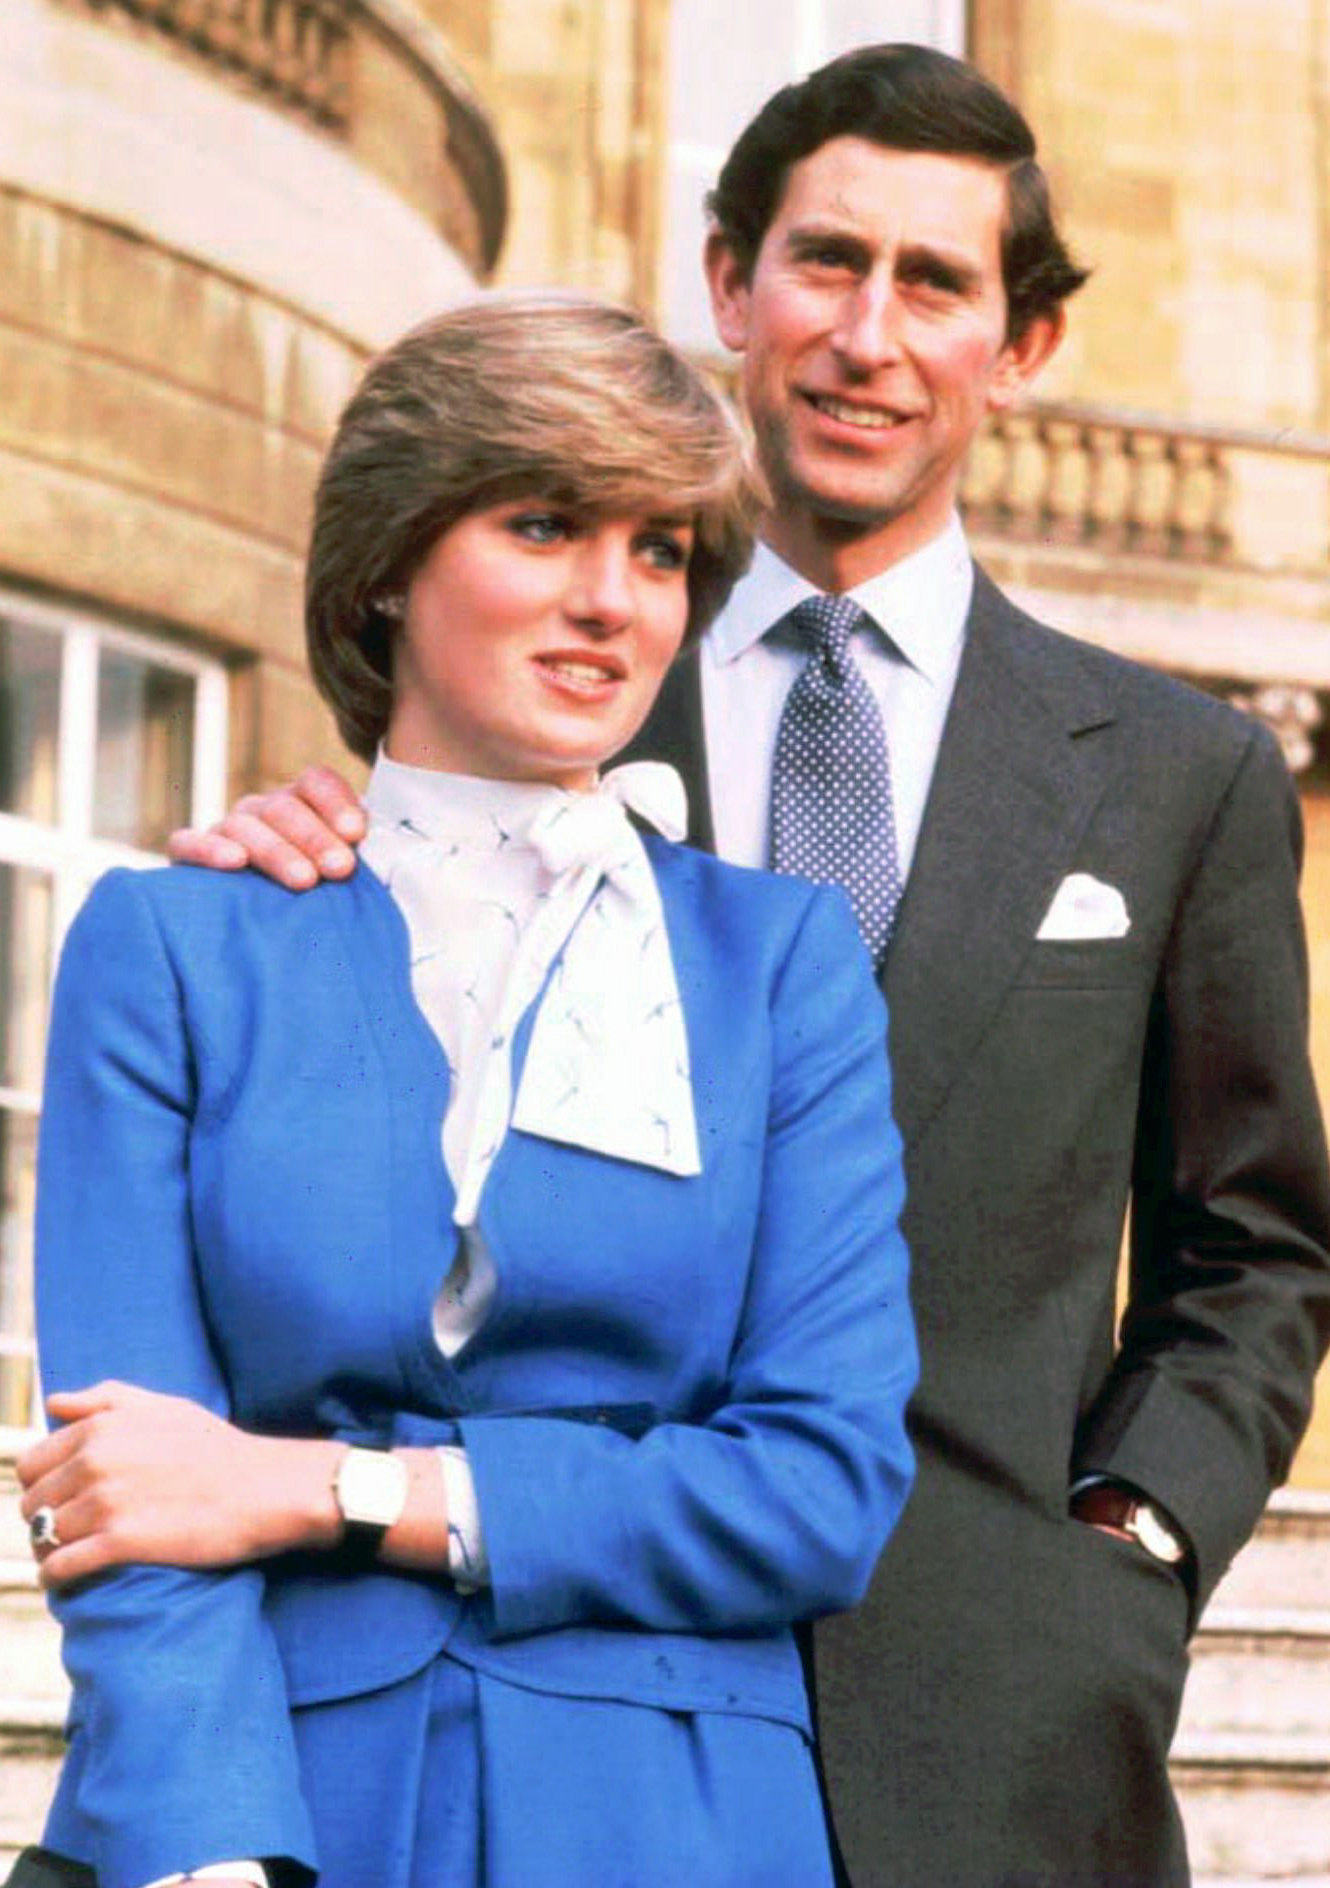 Did Barbra Streisand and Prince Charles have an affair?